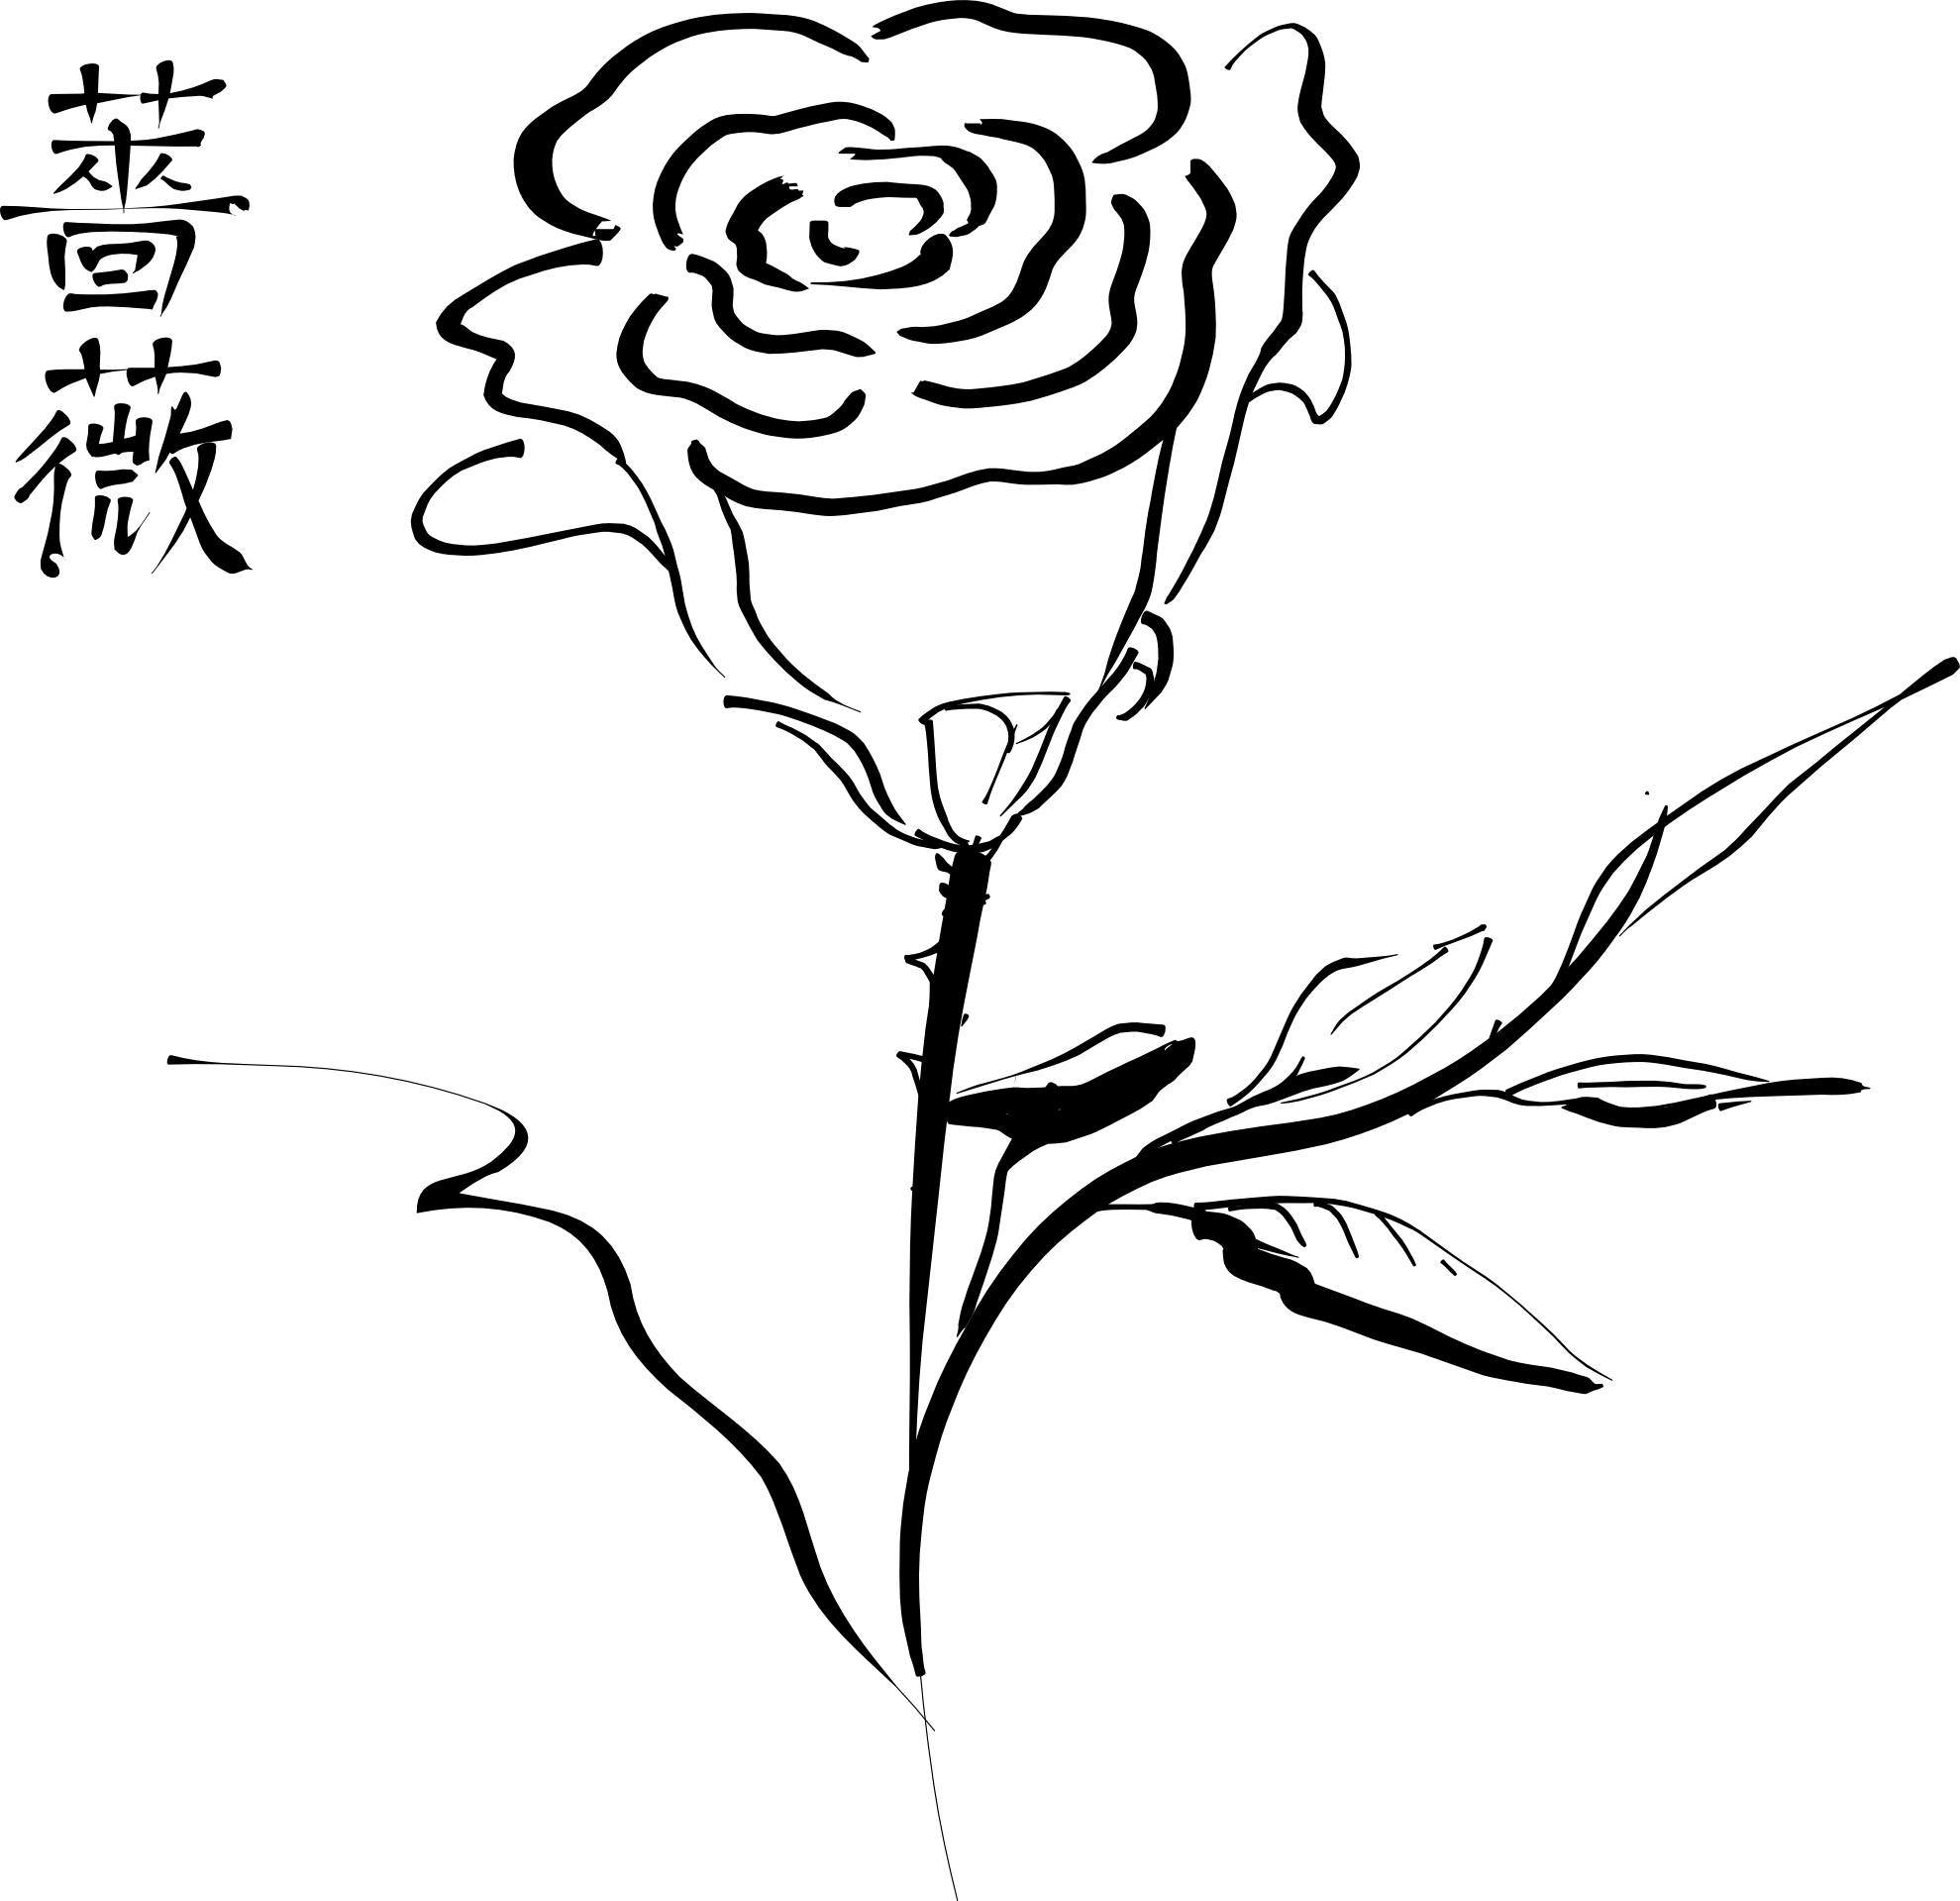 1979x1919 rose black white line art Clipart Panda